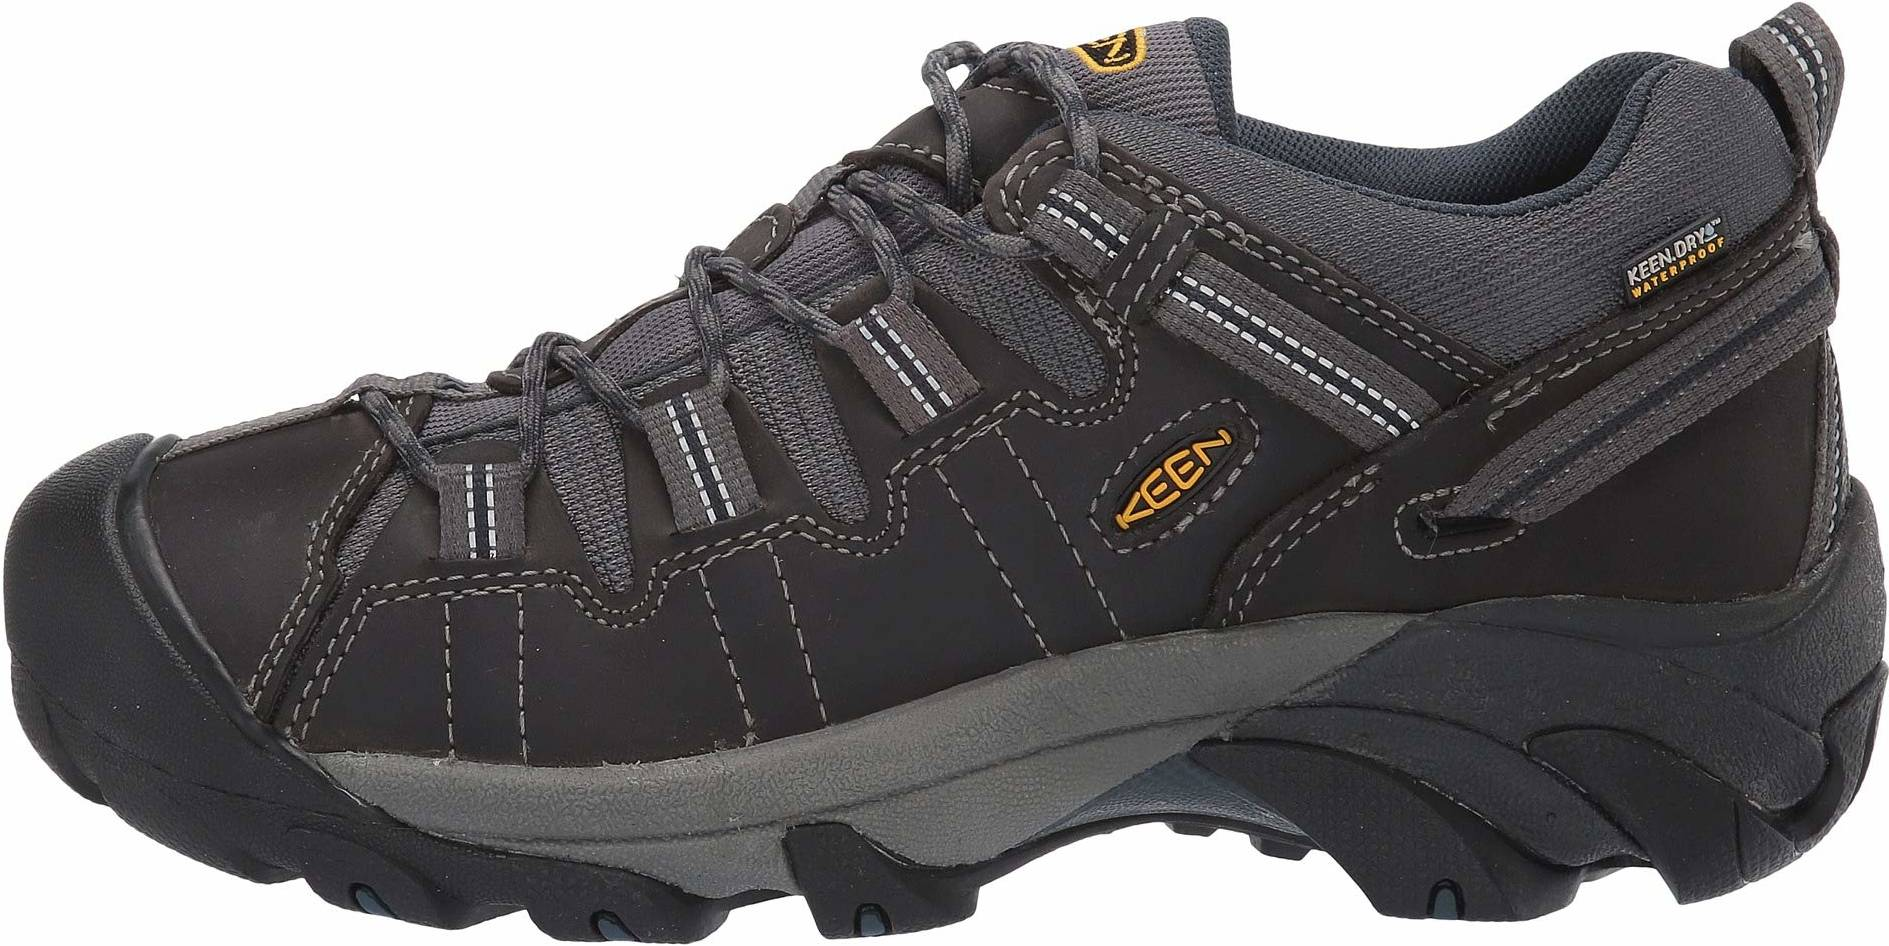 Only $113 + Review of KEEN Targhee II